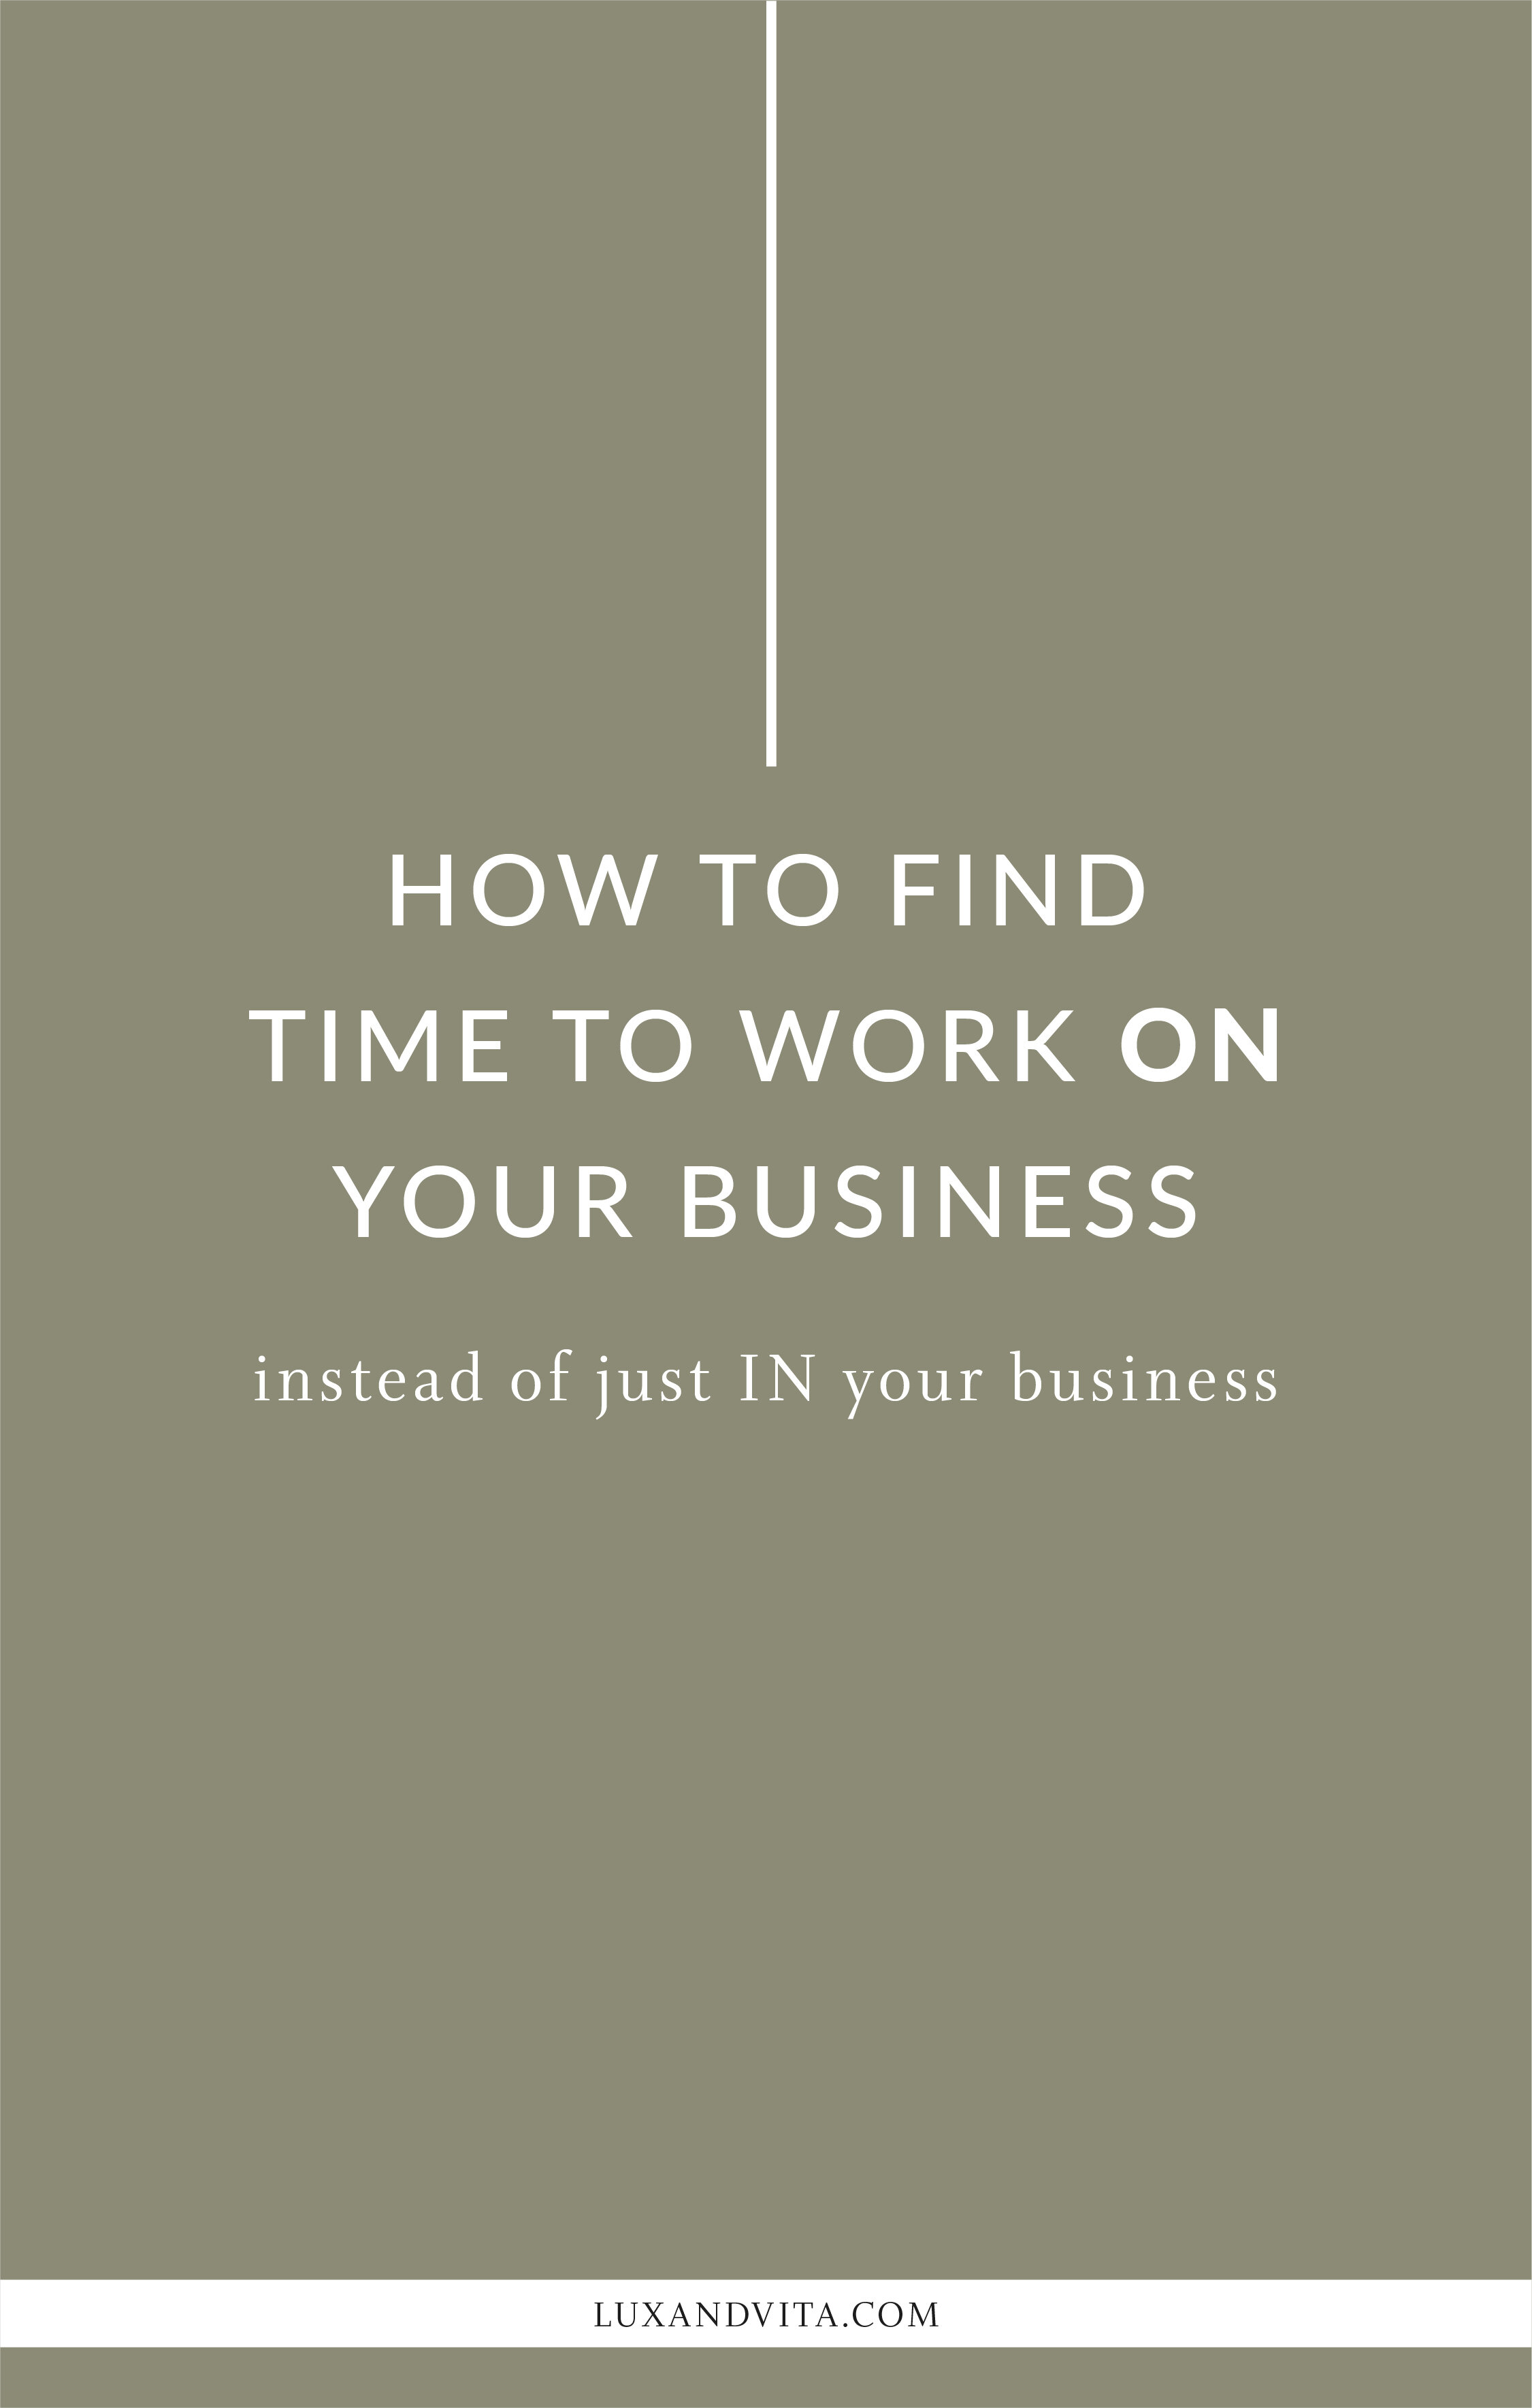 How to find time to work on your business_Pinterest 2.jpg